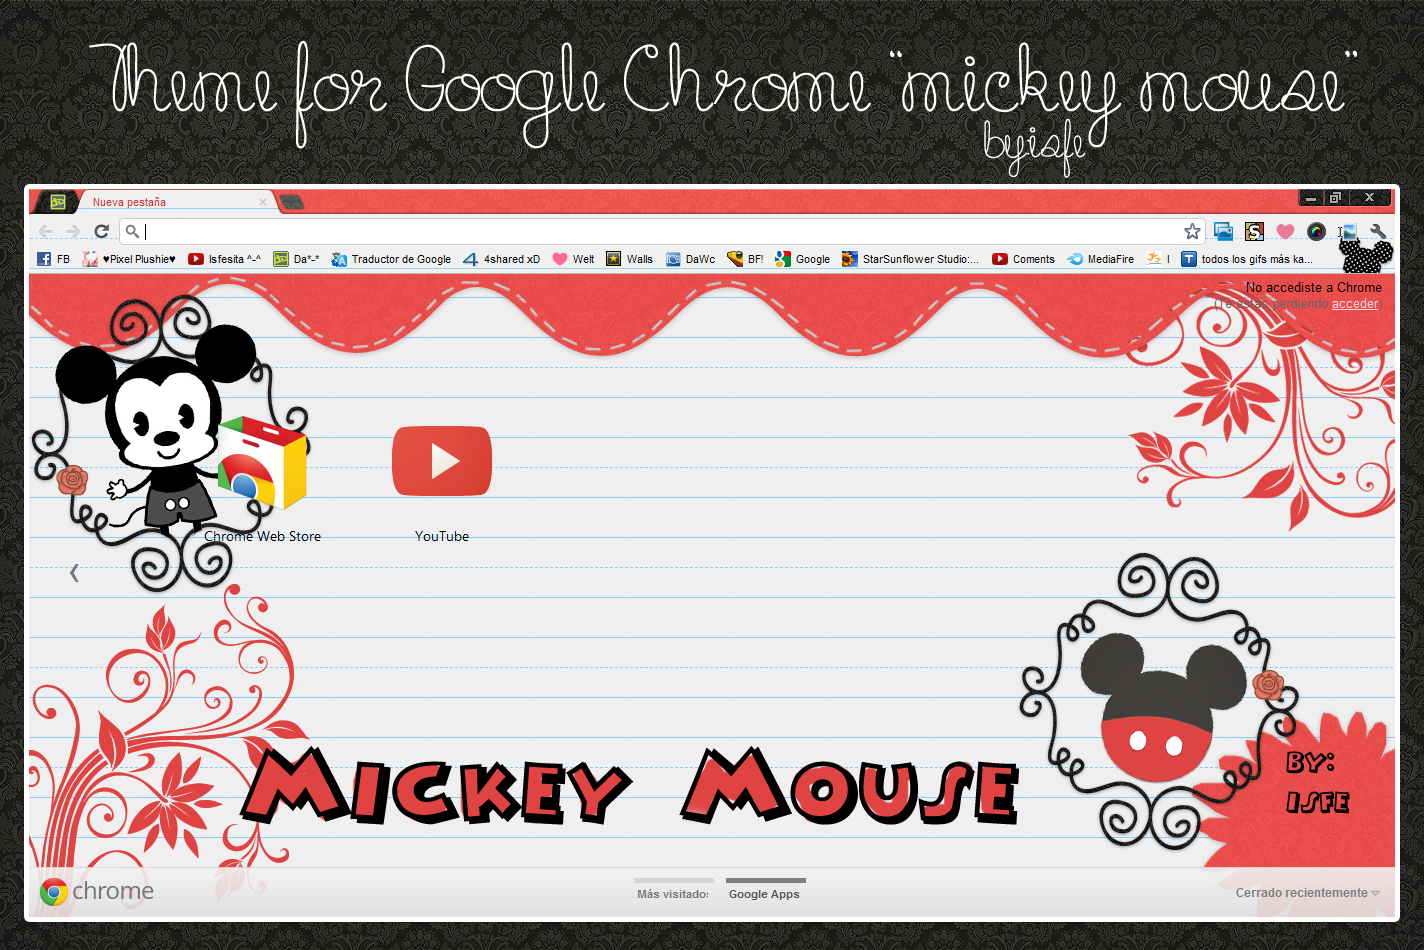 Google themes - Coral M 82 17 Theme For Google Chrome Mickey Mouse By Isfe